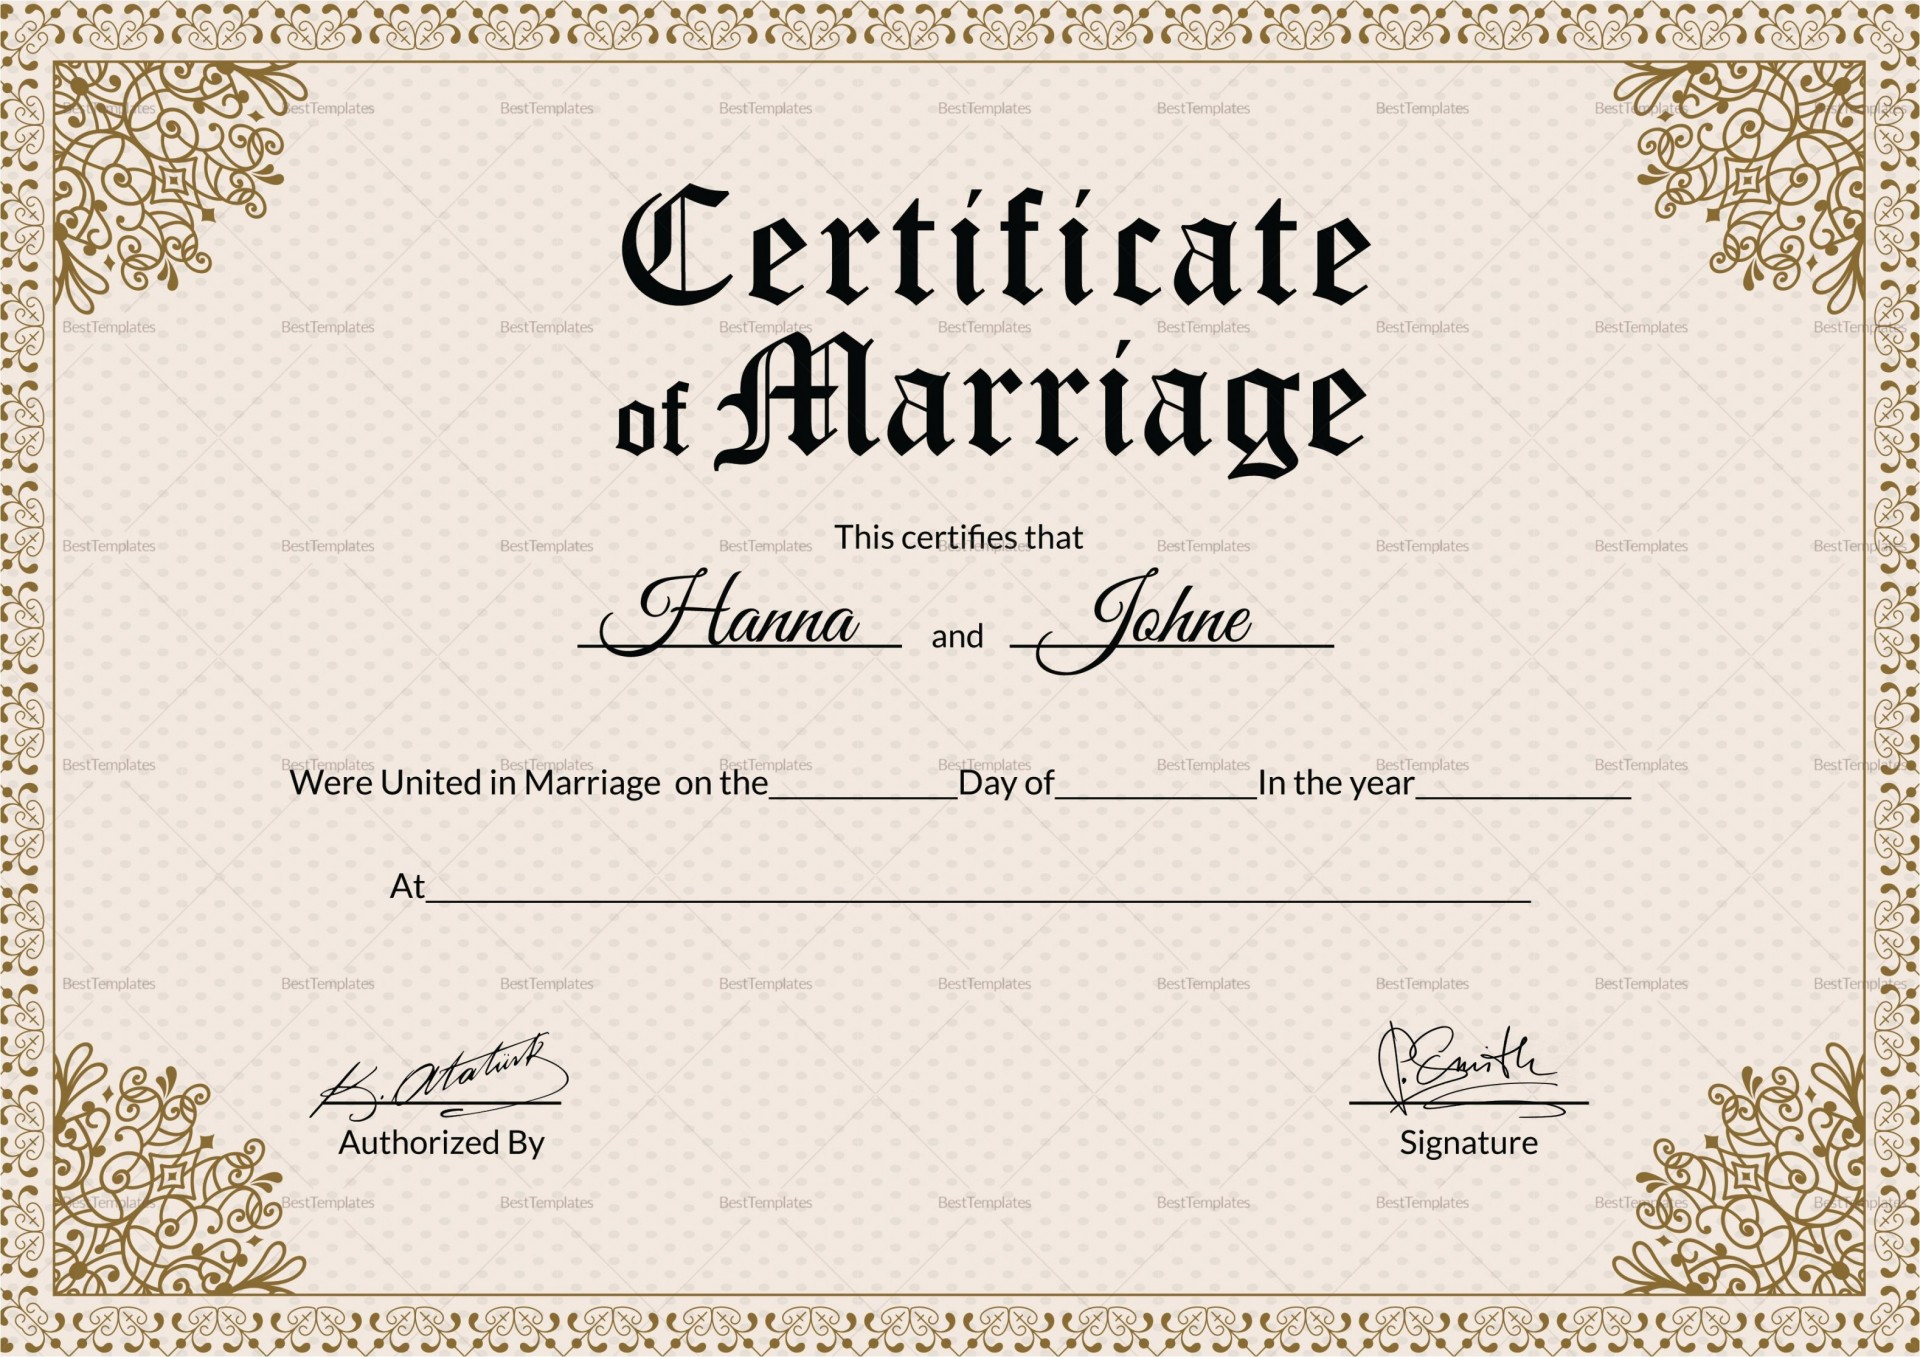 002 Imposing Free Marriage Certificate Template Photo  Renewal Translation From Spanish To English Wedding Download1920